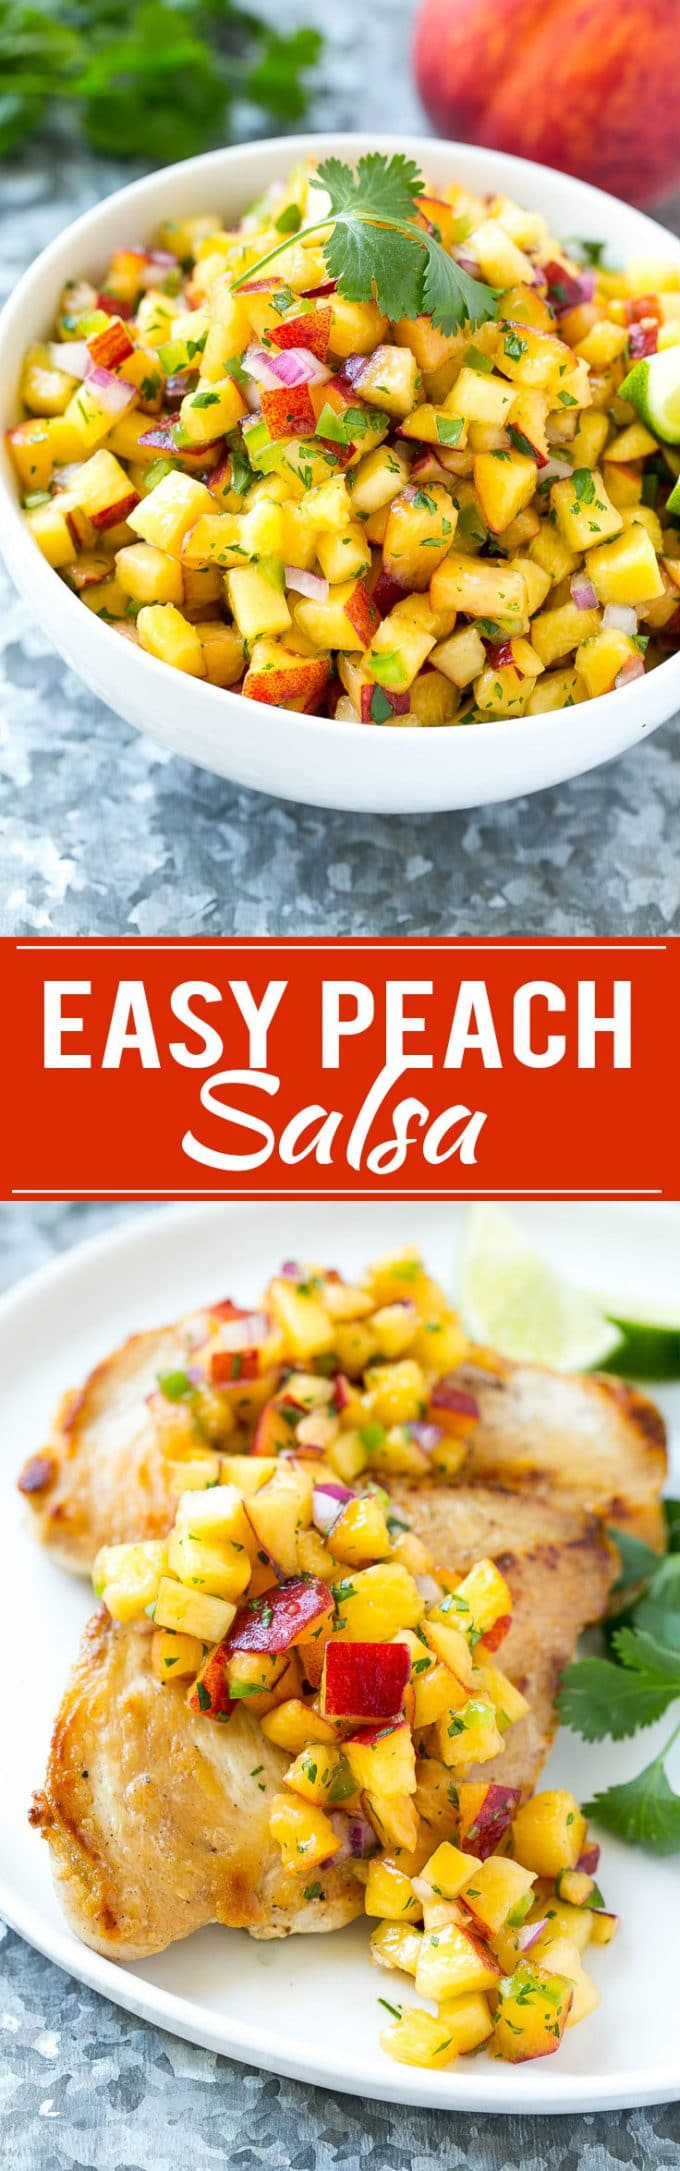 This recipe for peach salsa is the ultimate summer condiment. Juicy ripe peaches, herbs, and a bit of jalapeno creates a sweet and spicy salsa that's perfect with chips, on fish or chicken, or even on a sandwich! #adv